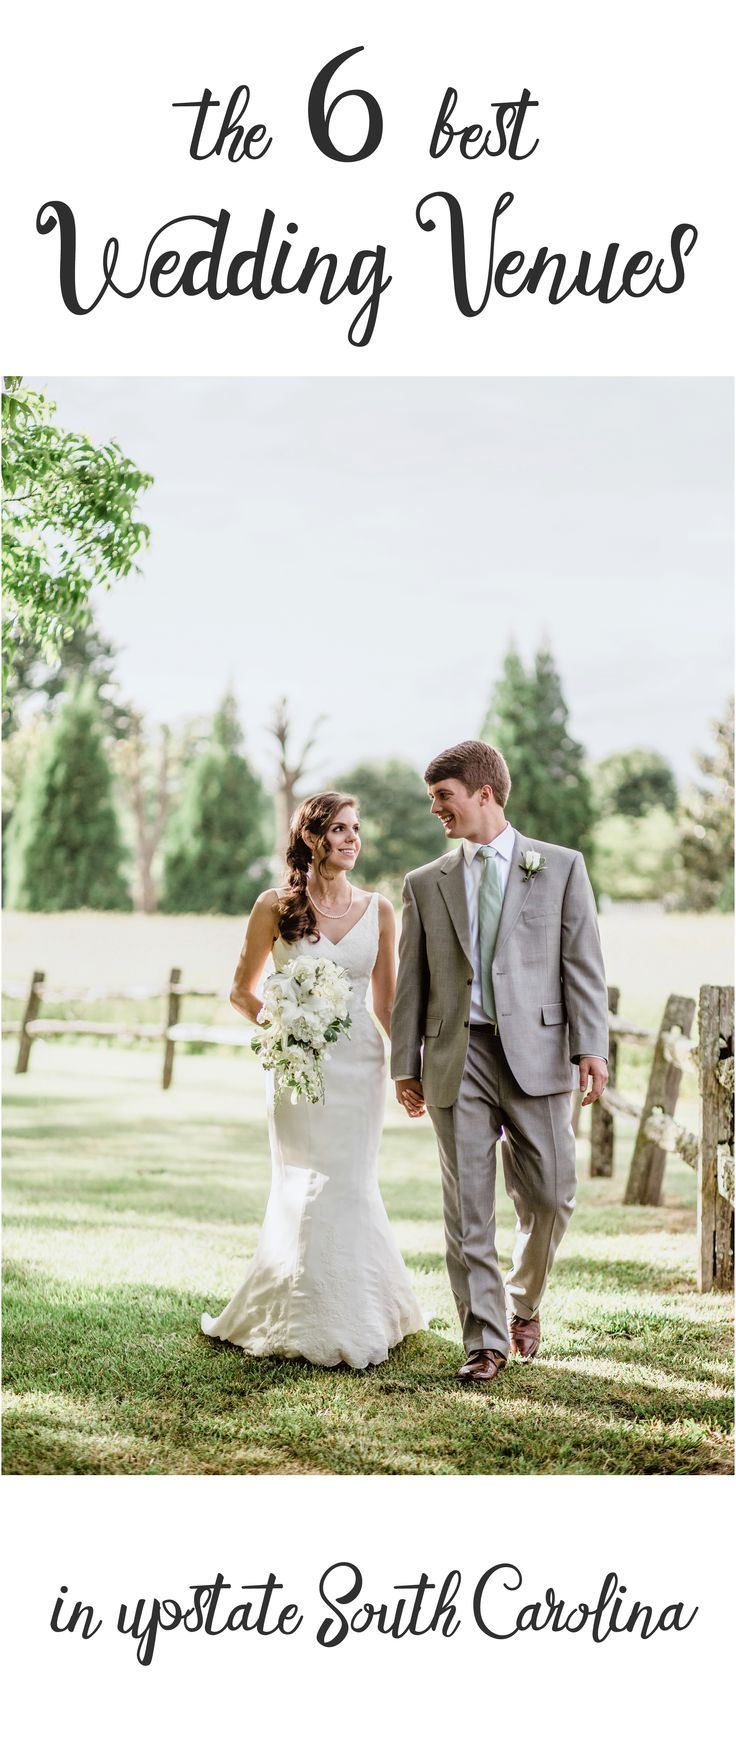 These Are Our Picks For The Best Wedding Venues In And Around Greenville Sc Yeahthatgreenville